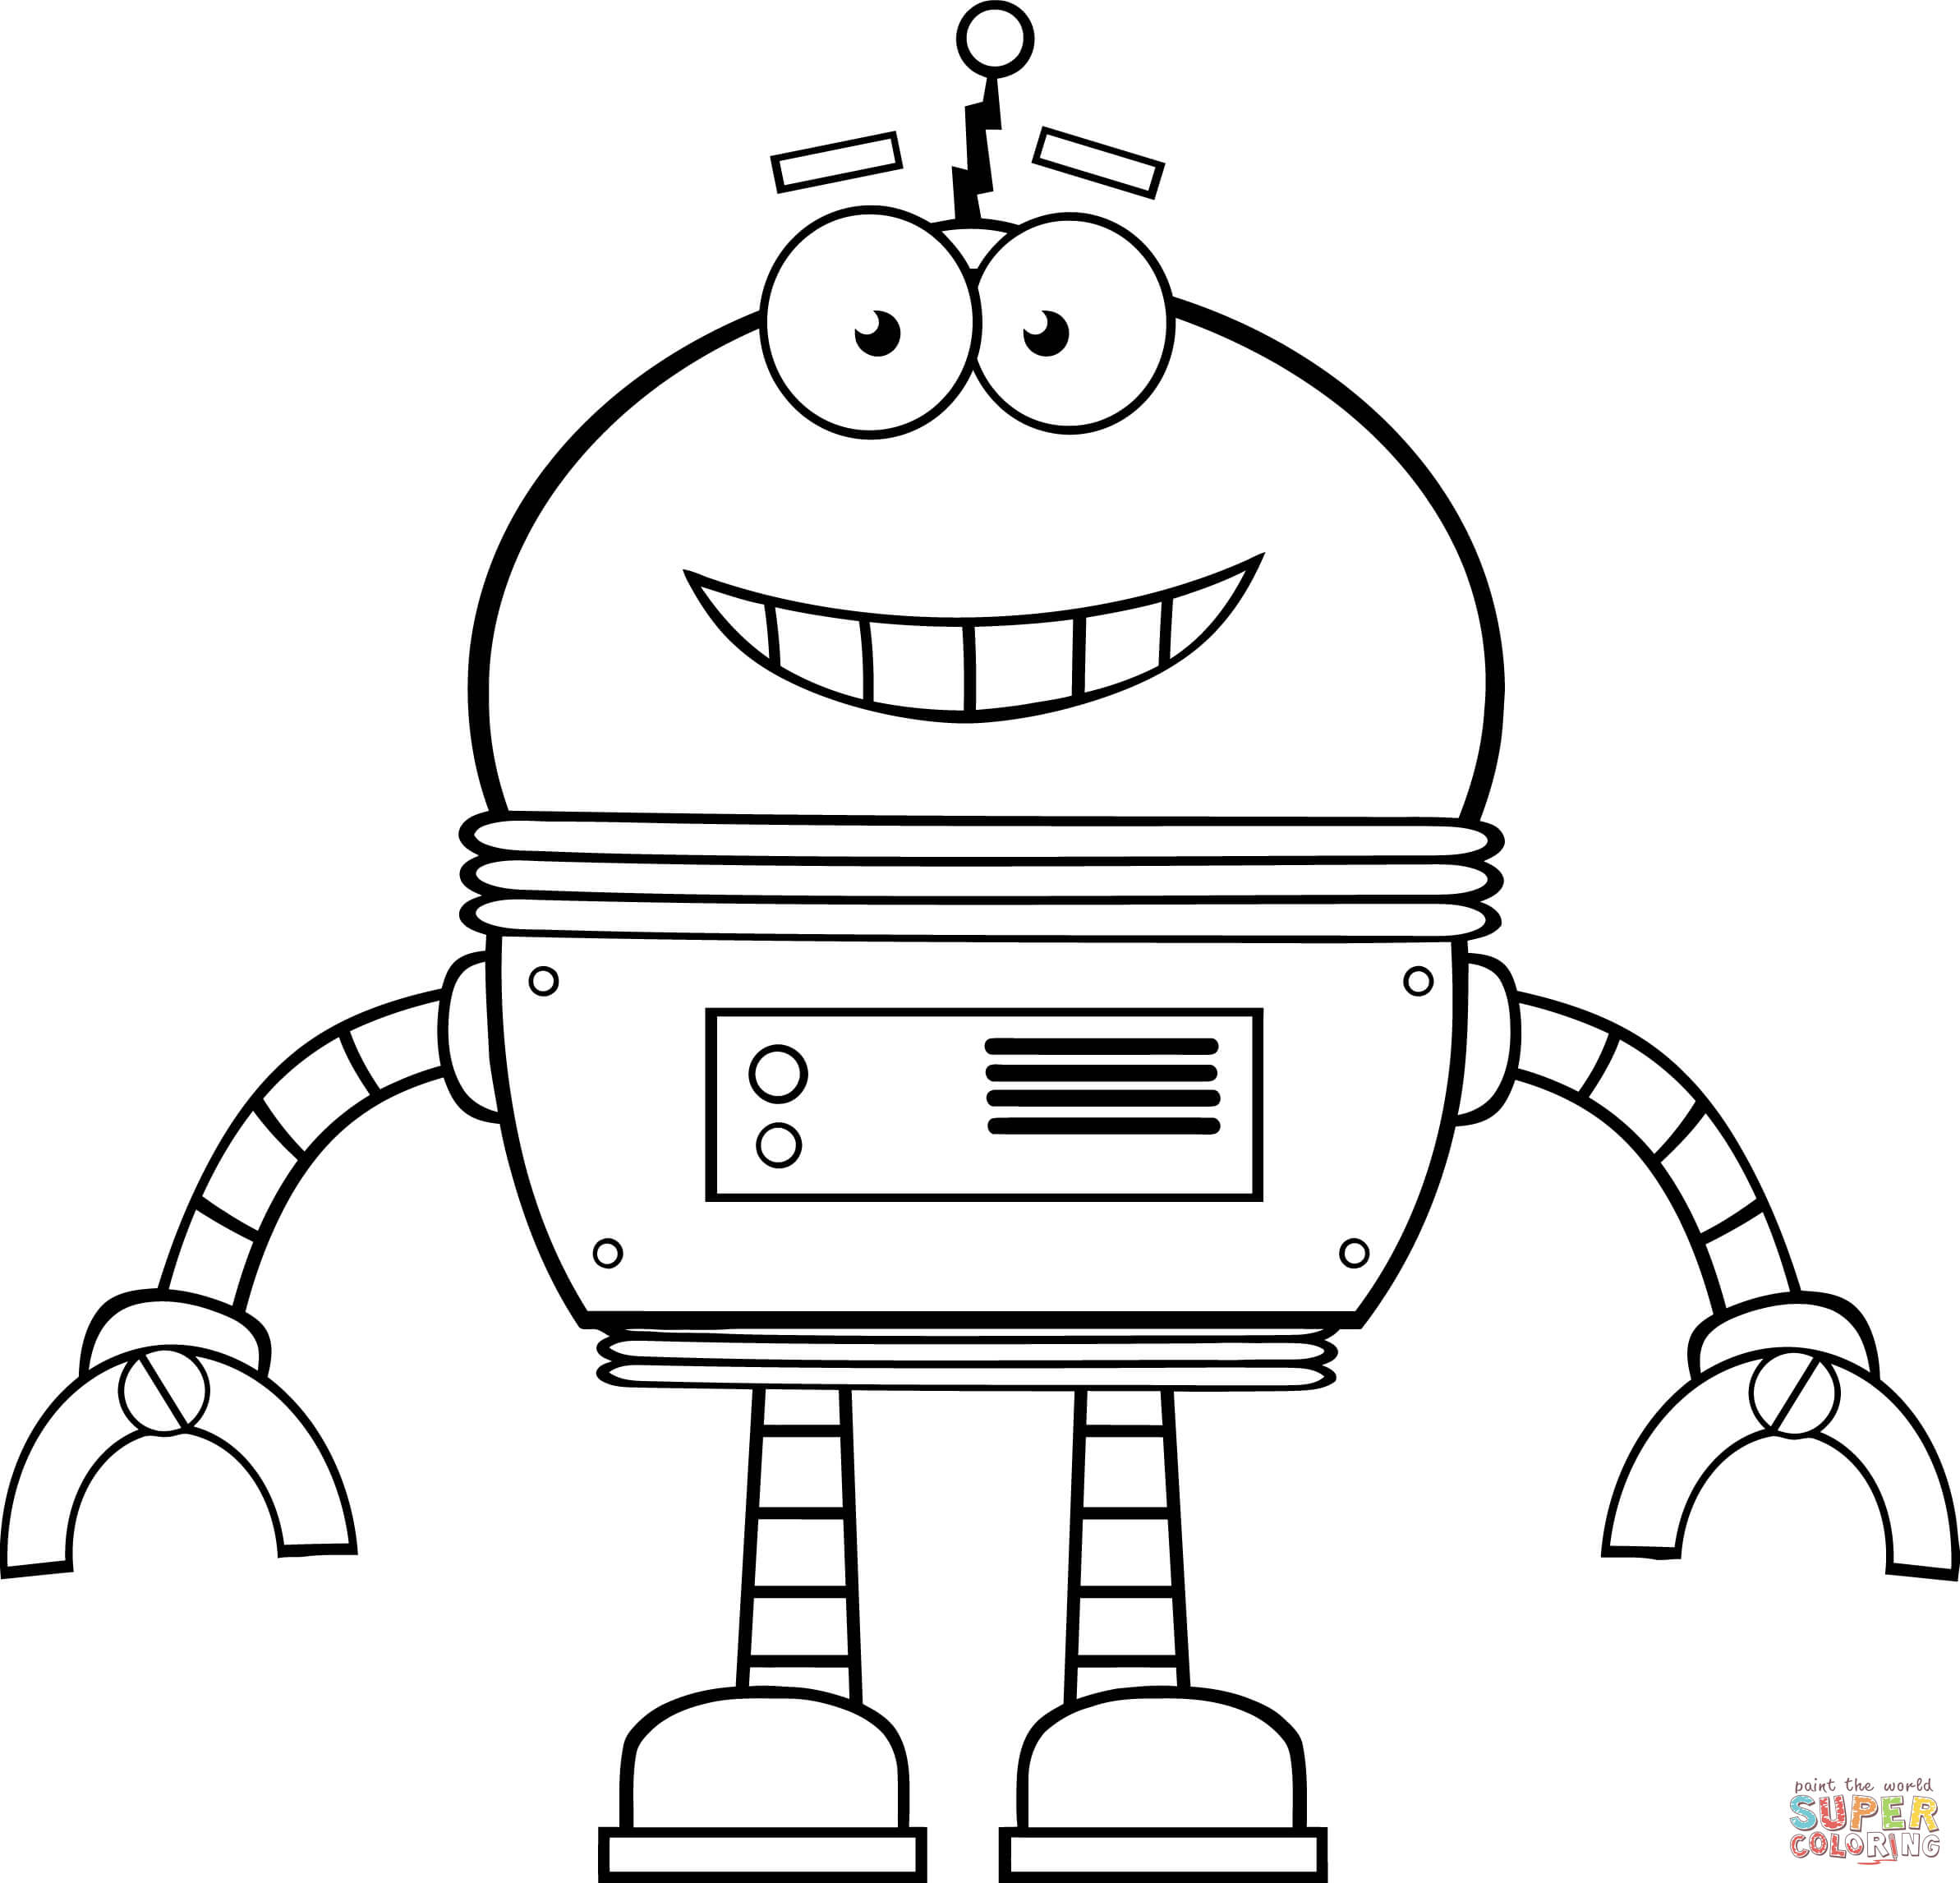 Smiling Robot Coloring Page